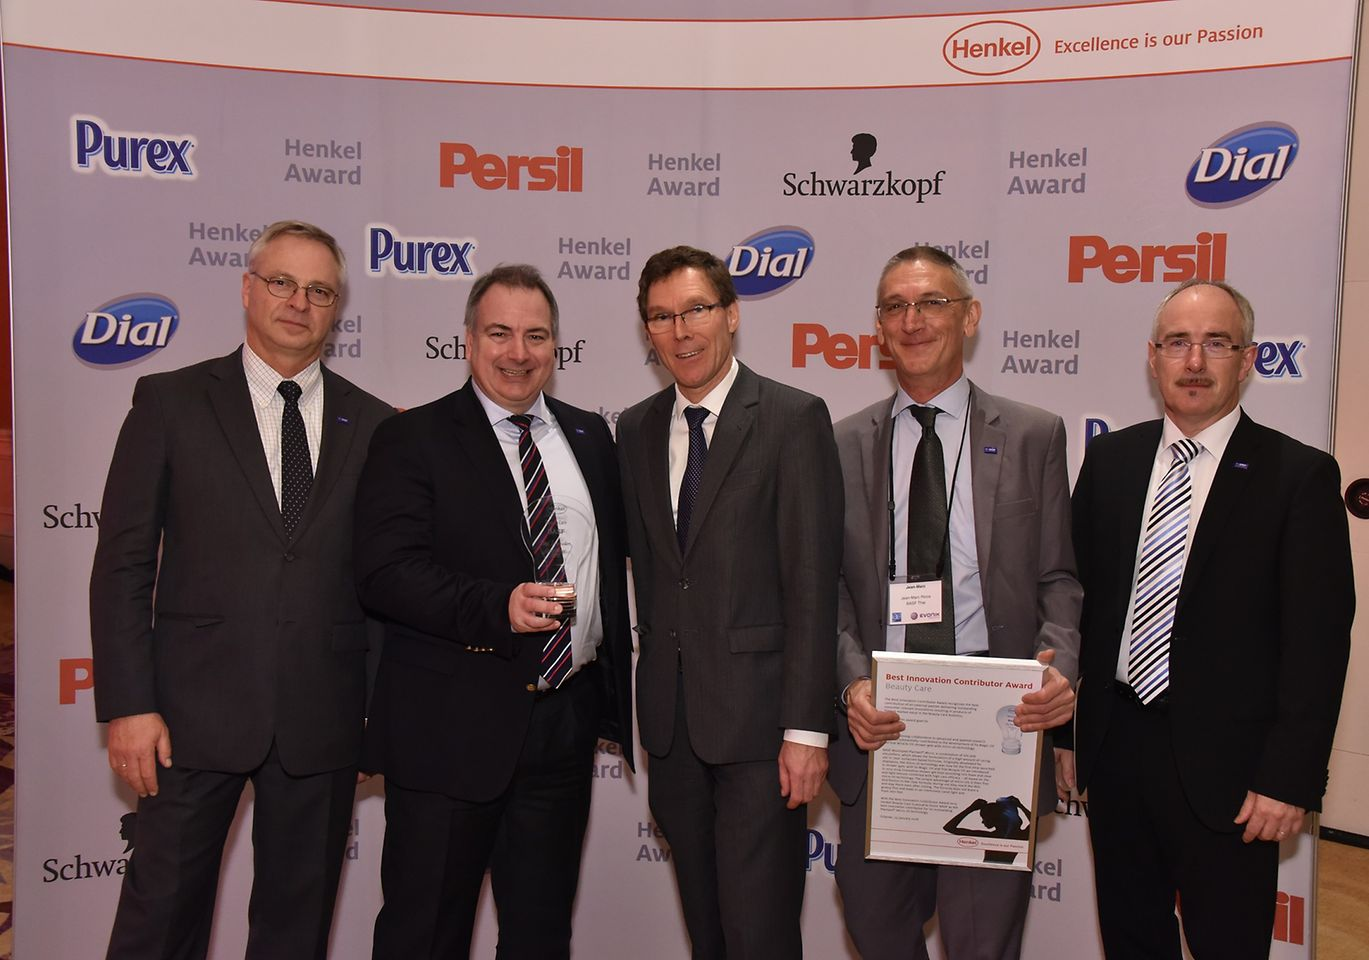 From left to right: Andres Jaffe, Hans Reiners, Thomas Förster, Jean-Marc Ricca, Jan-Peter Sander.